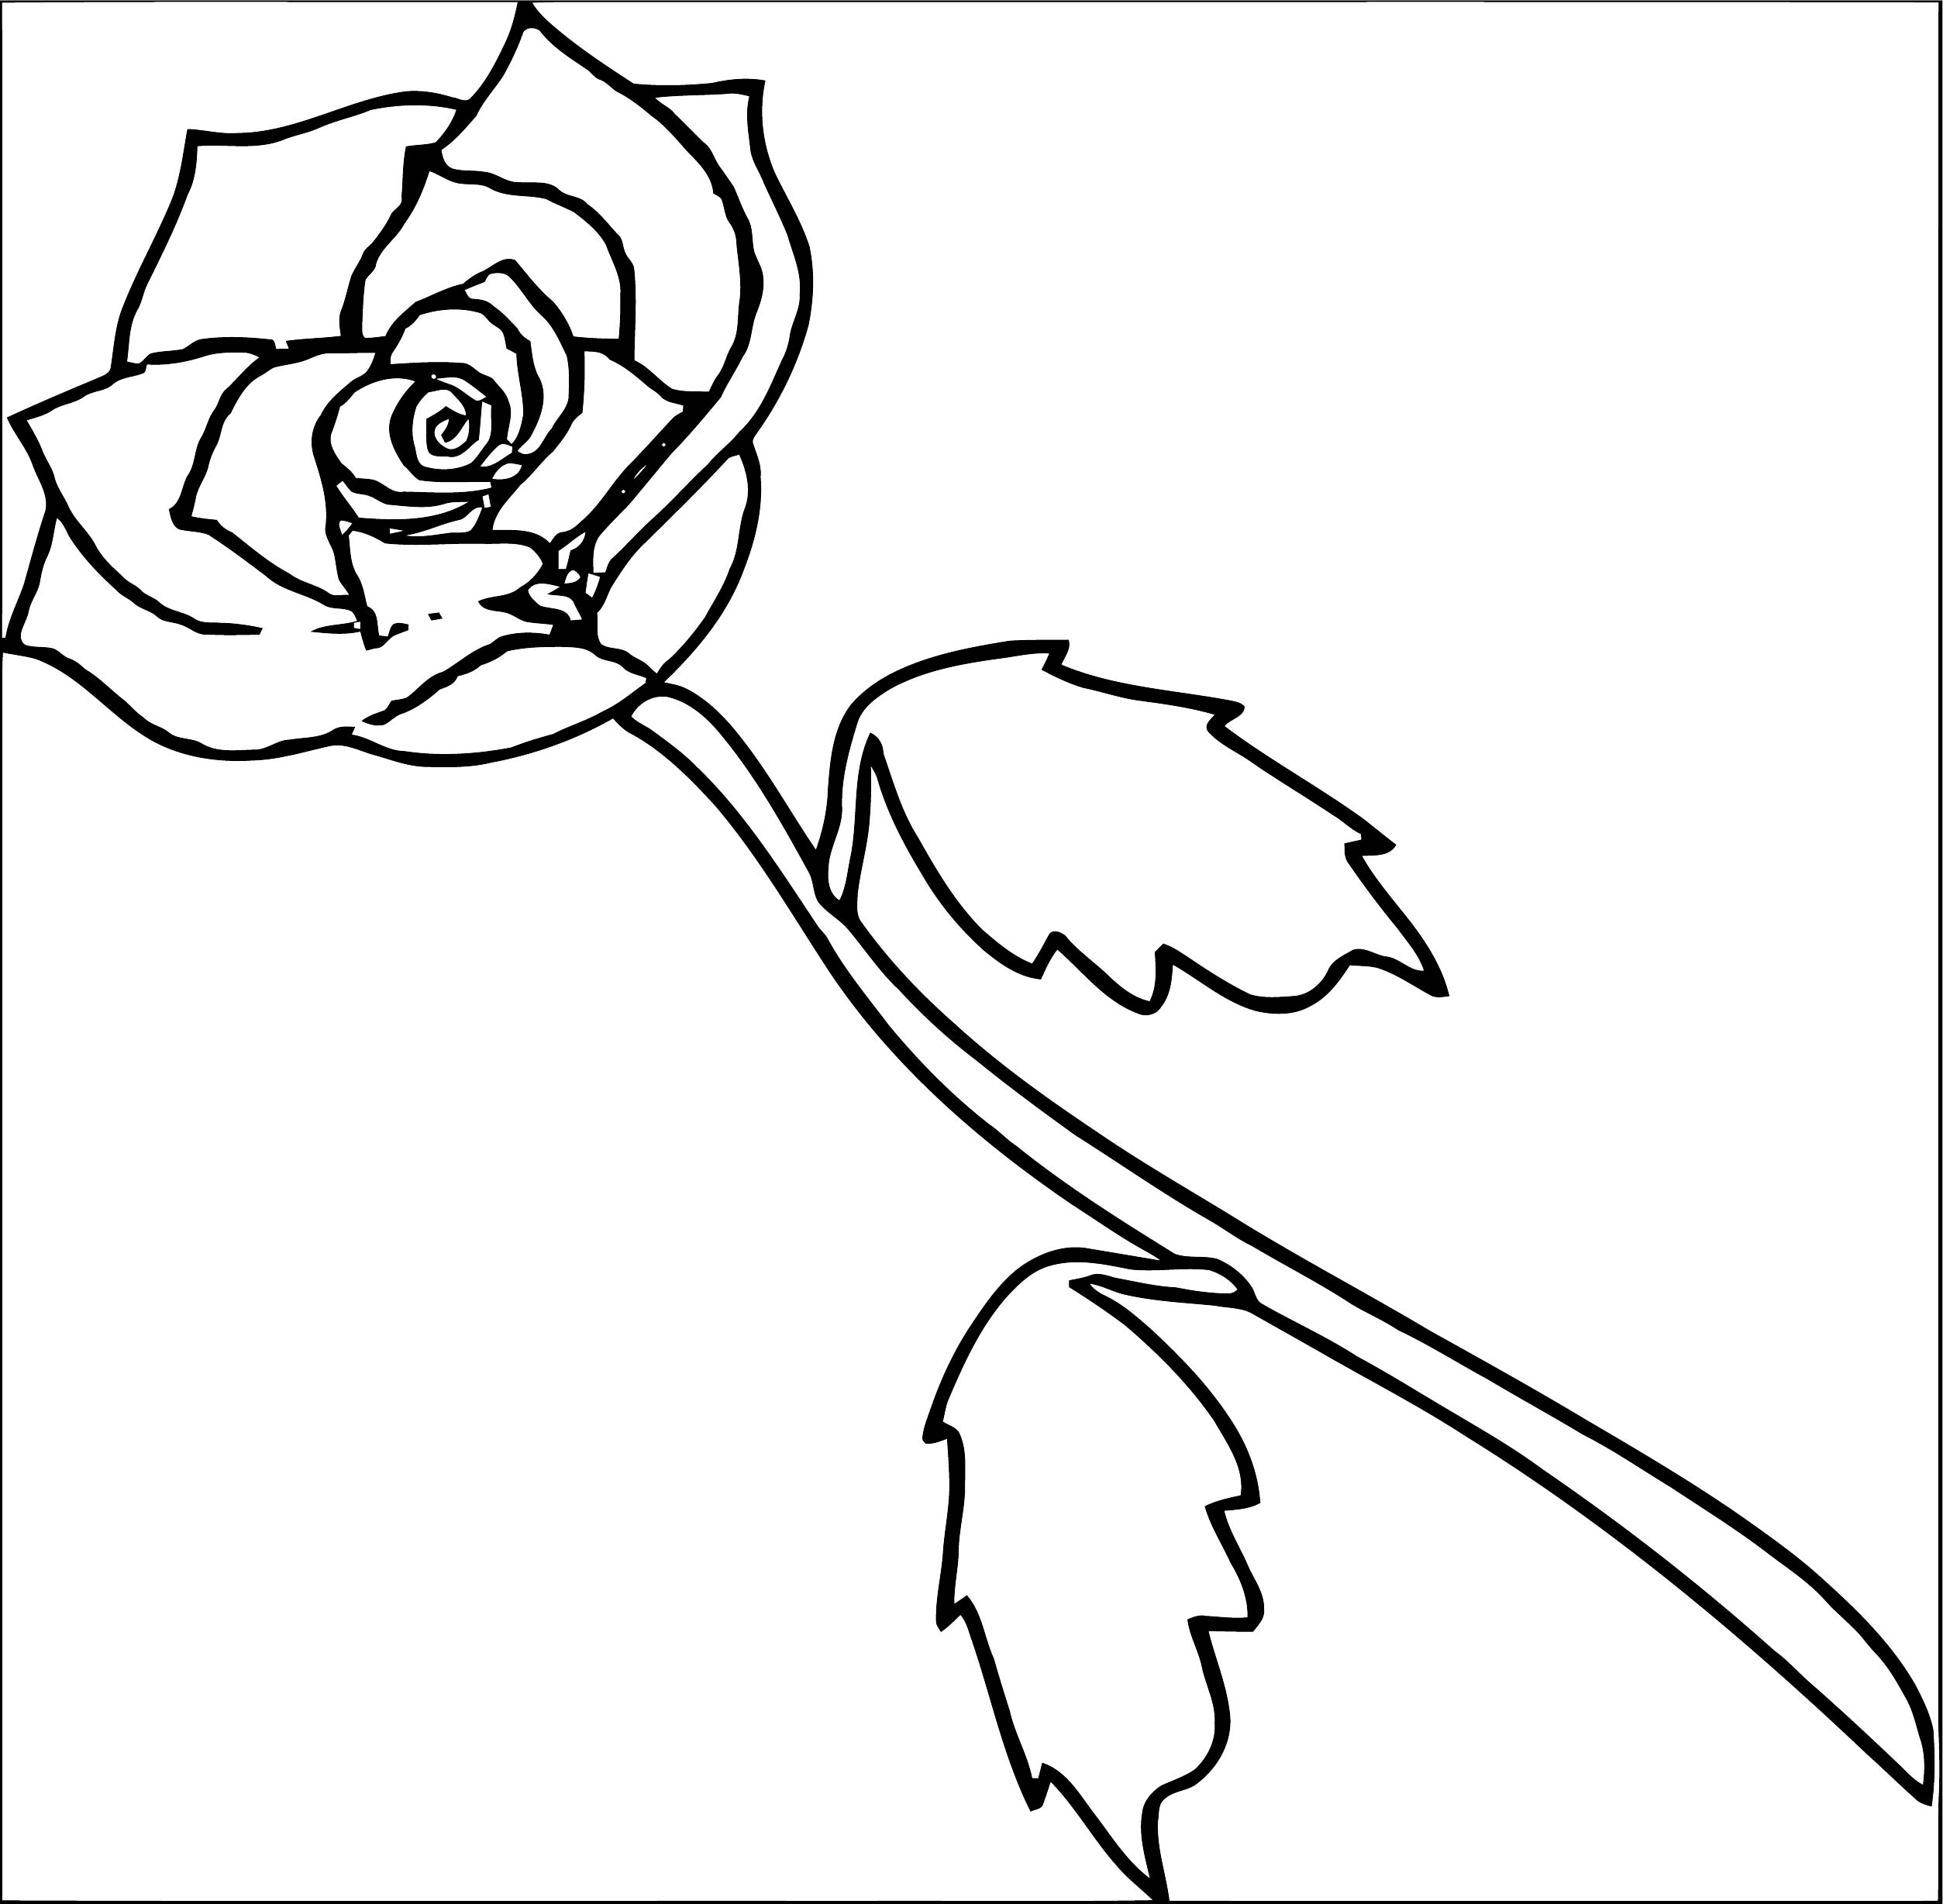 Rose Flower Coloring Page 044